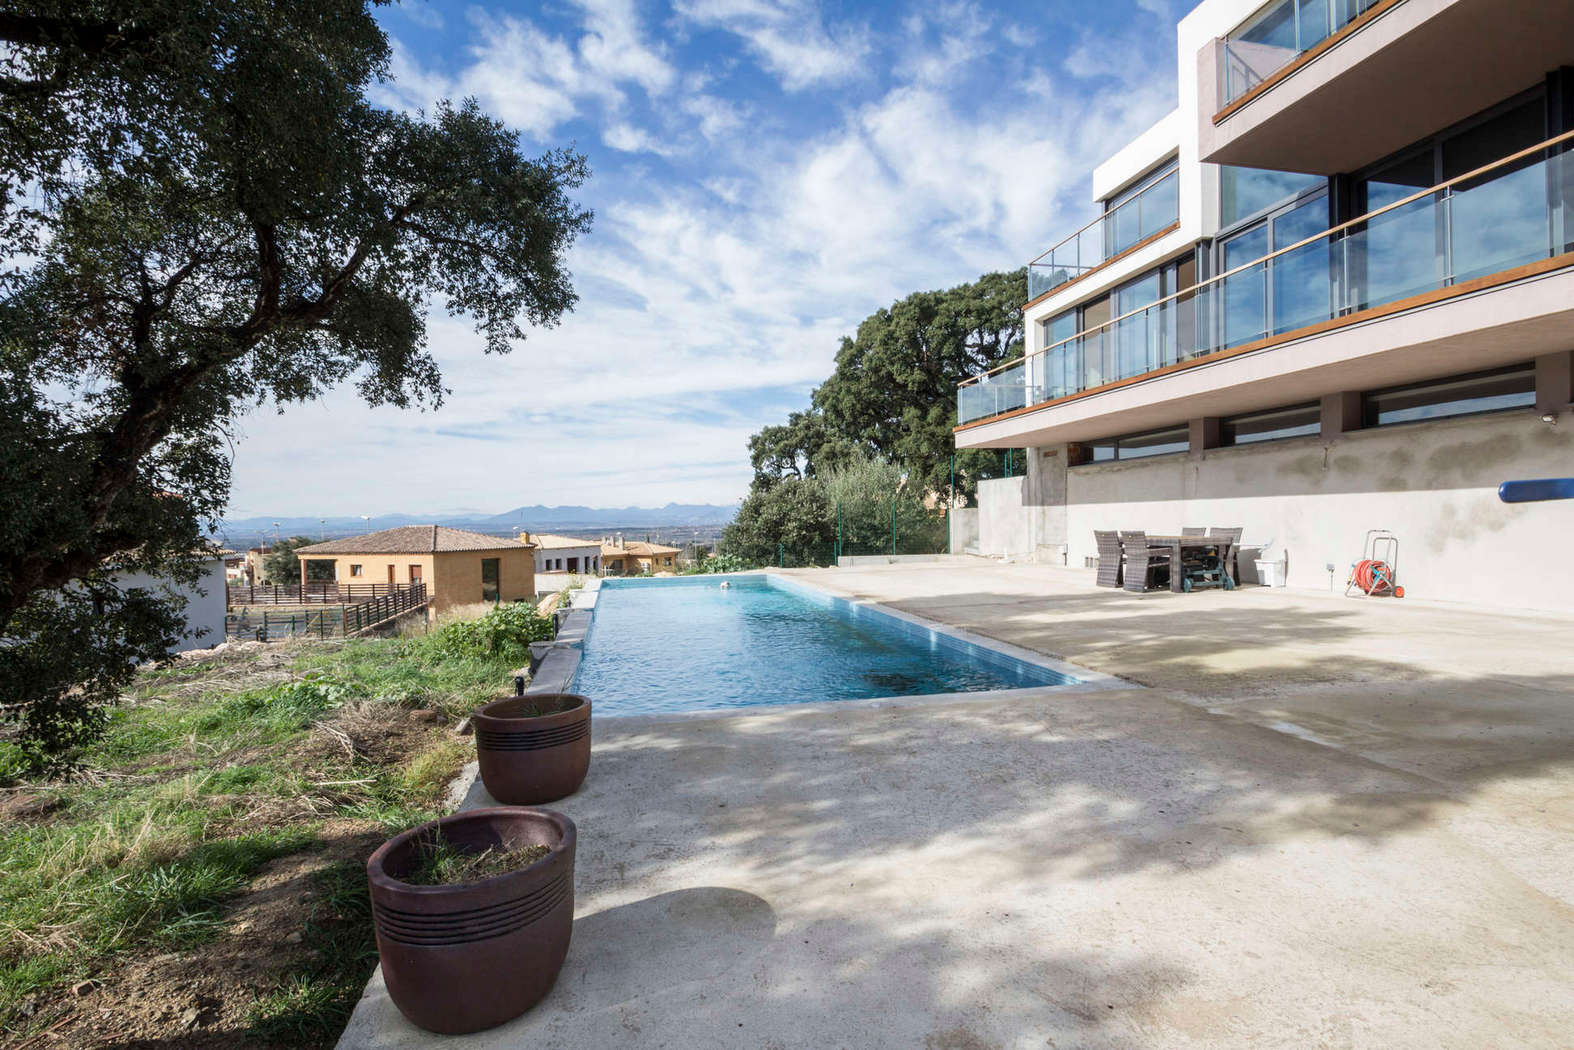 Modern villa with pool for sale in Palau Saverdera